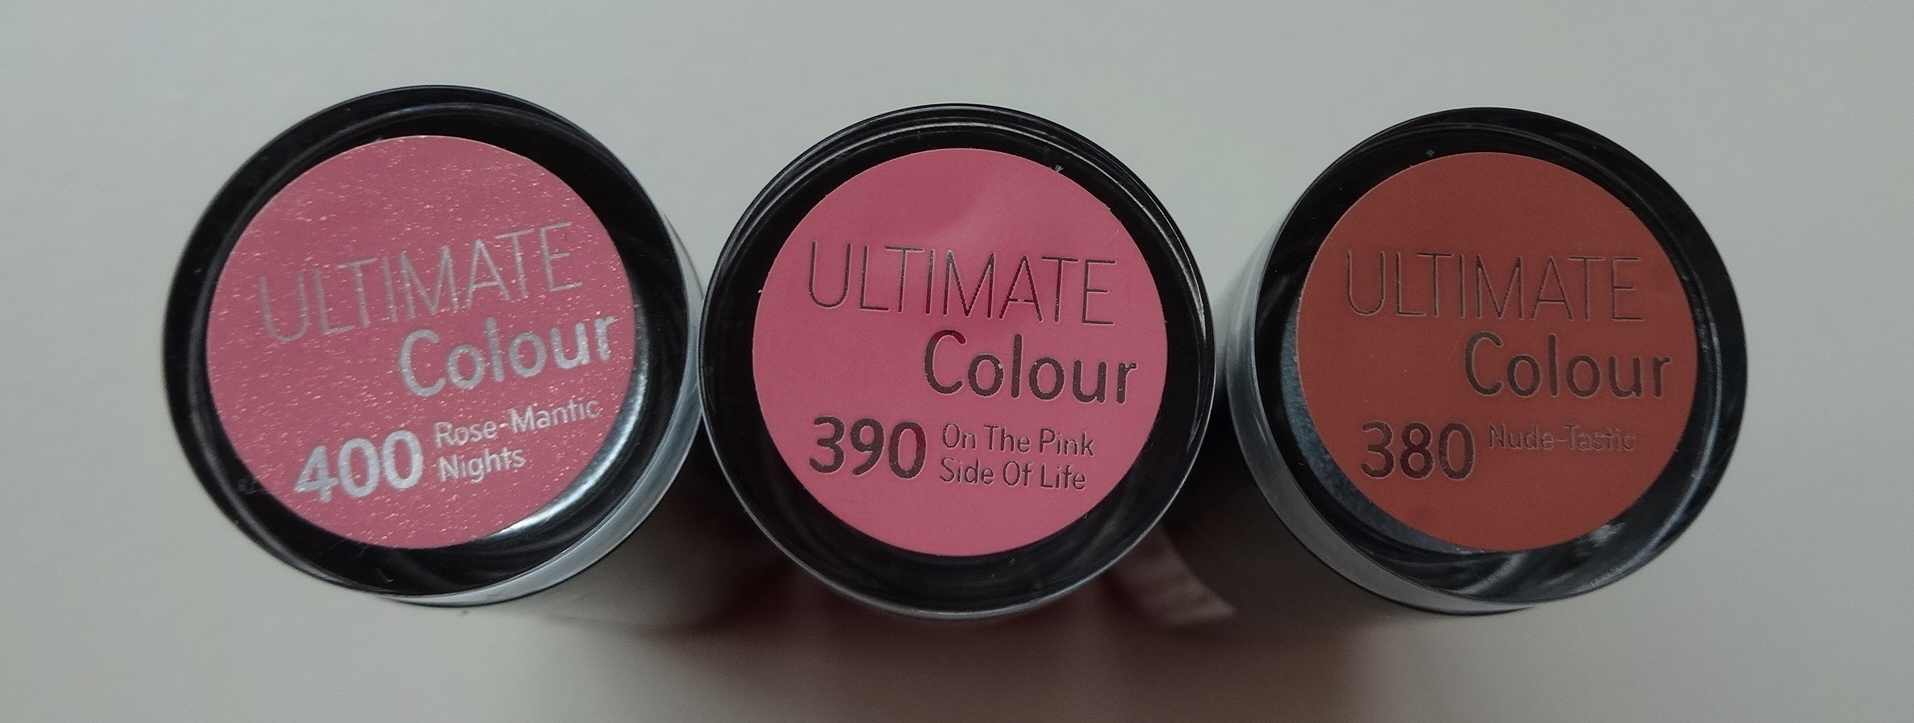 Catrice Event Hamburg Ultimate Color Lips HappyFace313